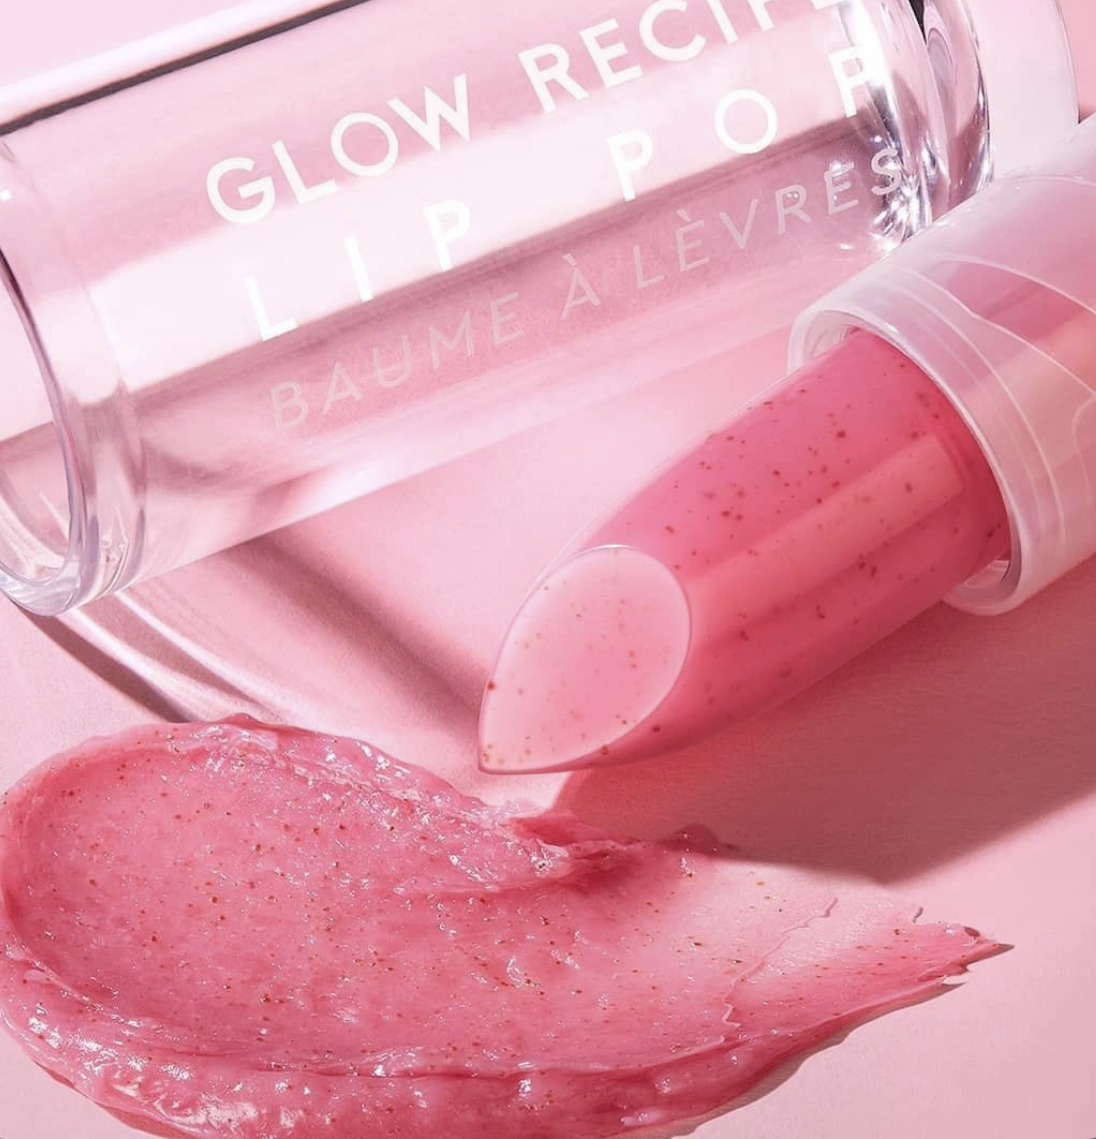 Glow Recipe Watermelon Glow Lip Pop